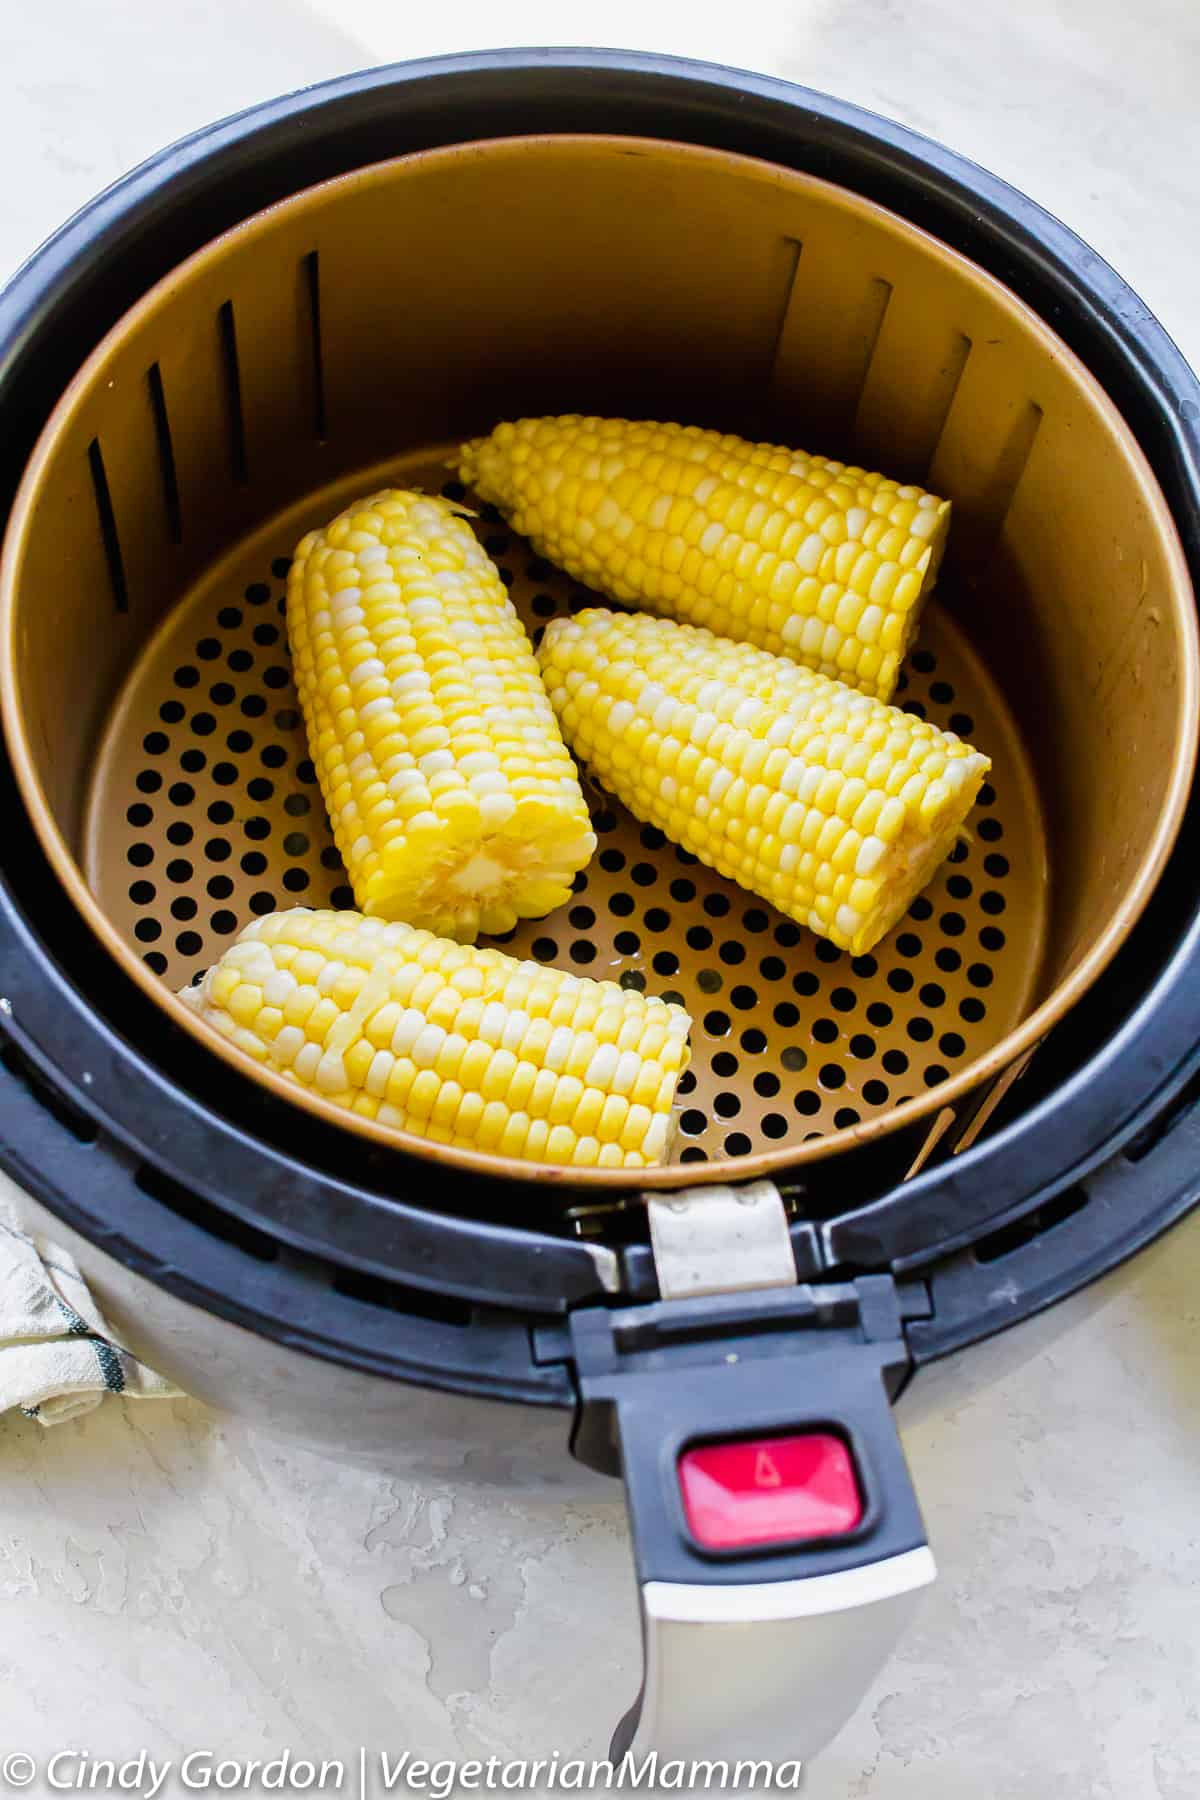 Corn on the cob can be made in an air fryer.